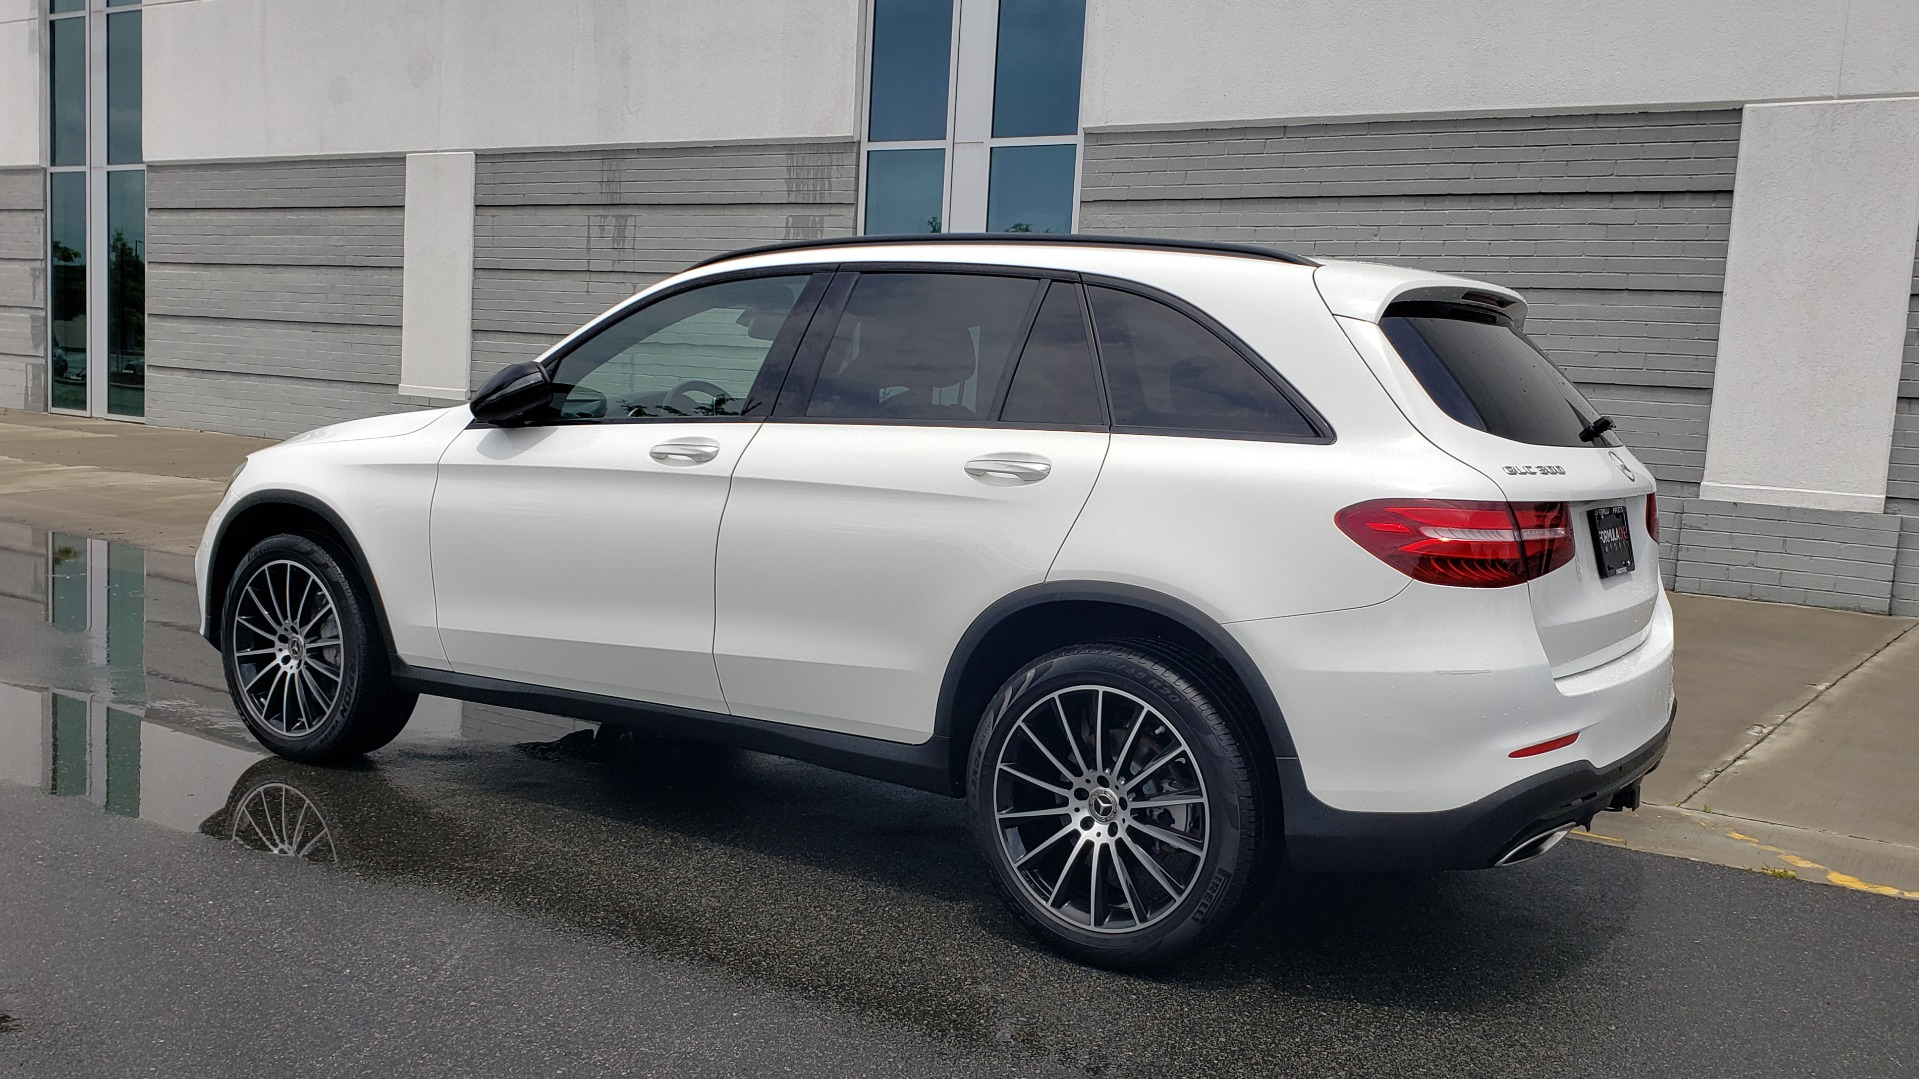 Used 2018 Mercedes-Benz GLC 300 4MATIC PREMIUM / NAV / BURMESTER SND / PANO-ROOF / REARVIEW for sale $35,495 at Formula Imports in Charlotte NC 28227 5